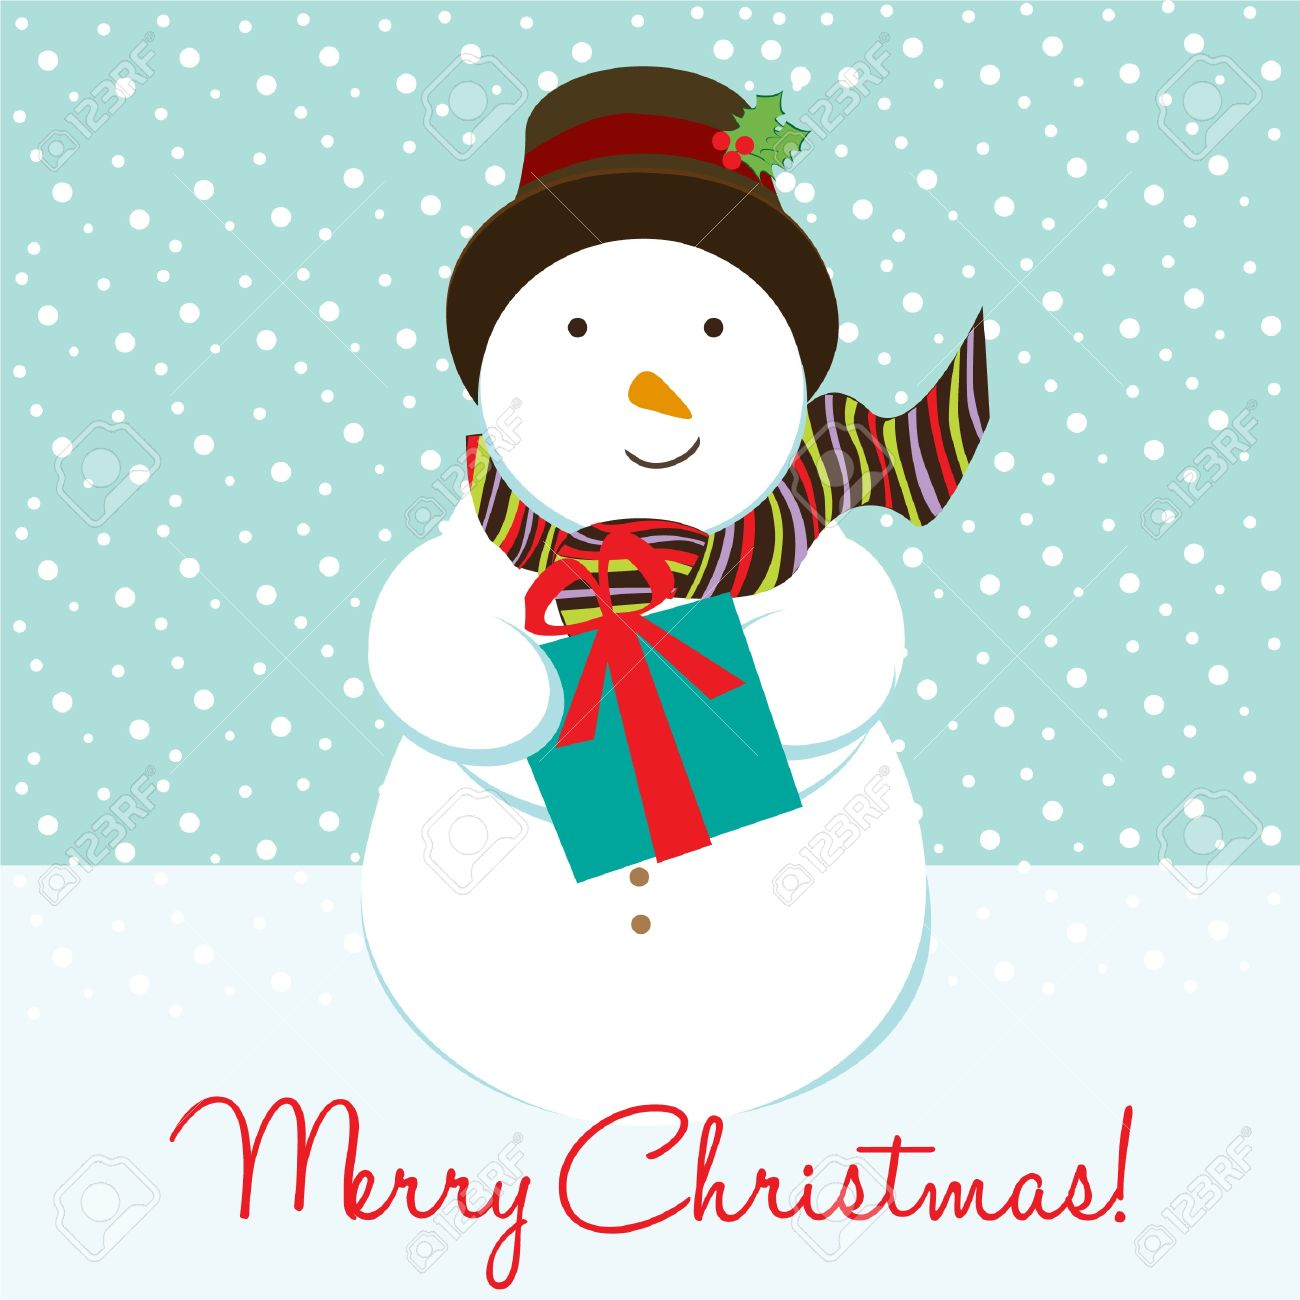 Snowman Christmas Card Royalty Free Cliparts, Vectors, And Stock ...